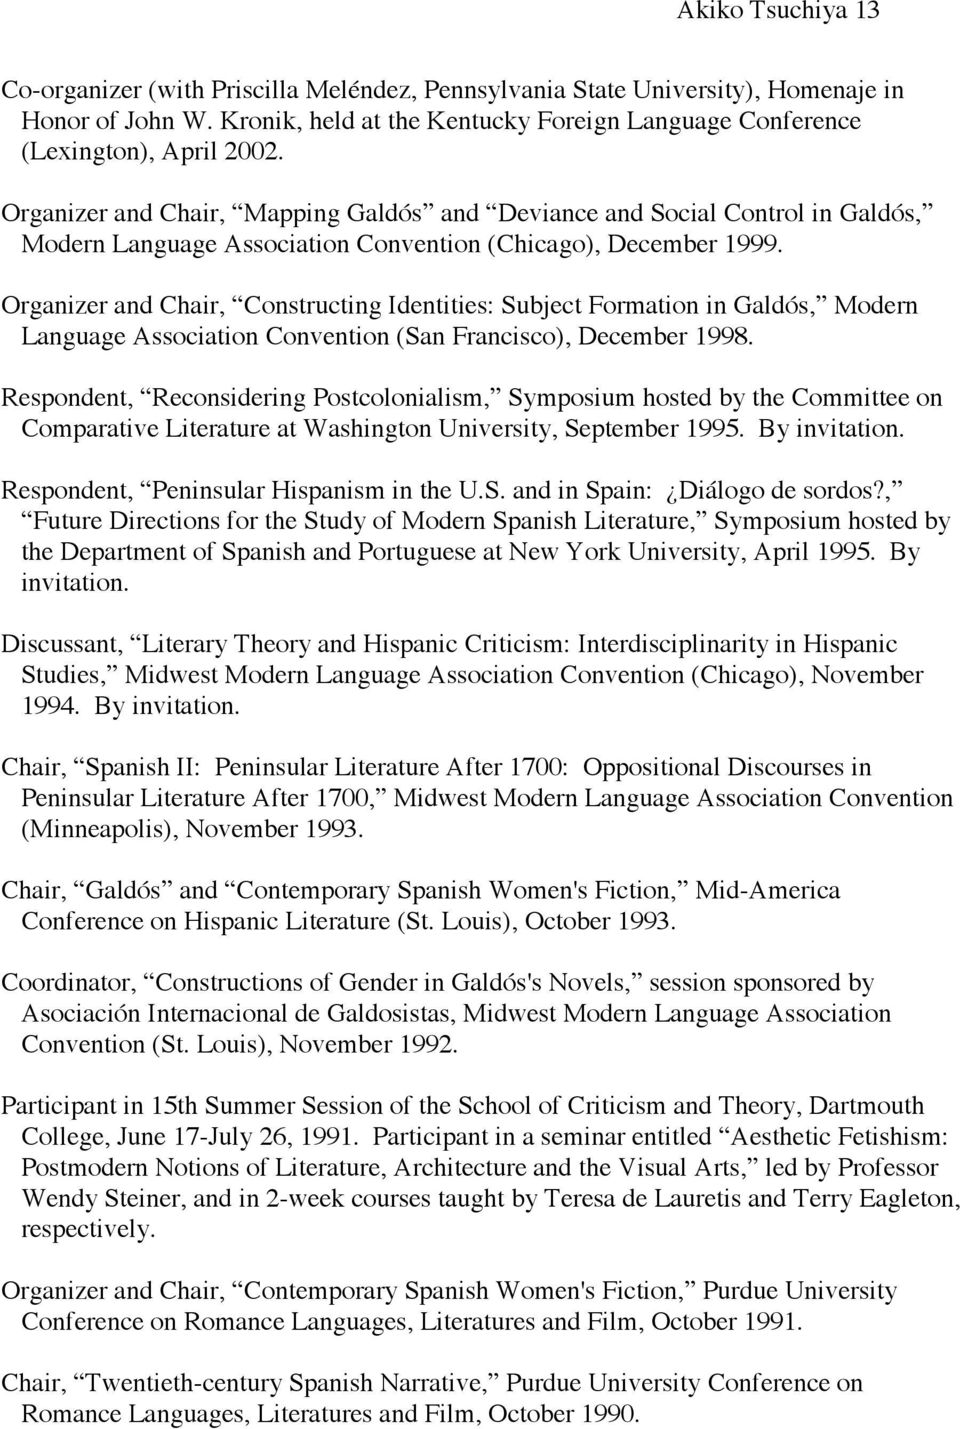 Organizer and Chair, Constructing Identities: Subject Formation in Galdós, Modern Language Association Convention (San Francisco), December 1998.